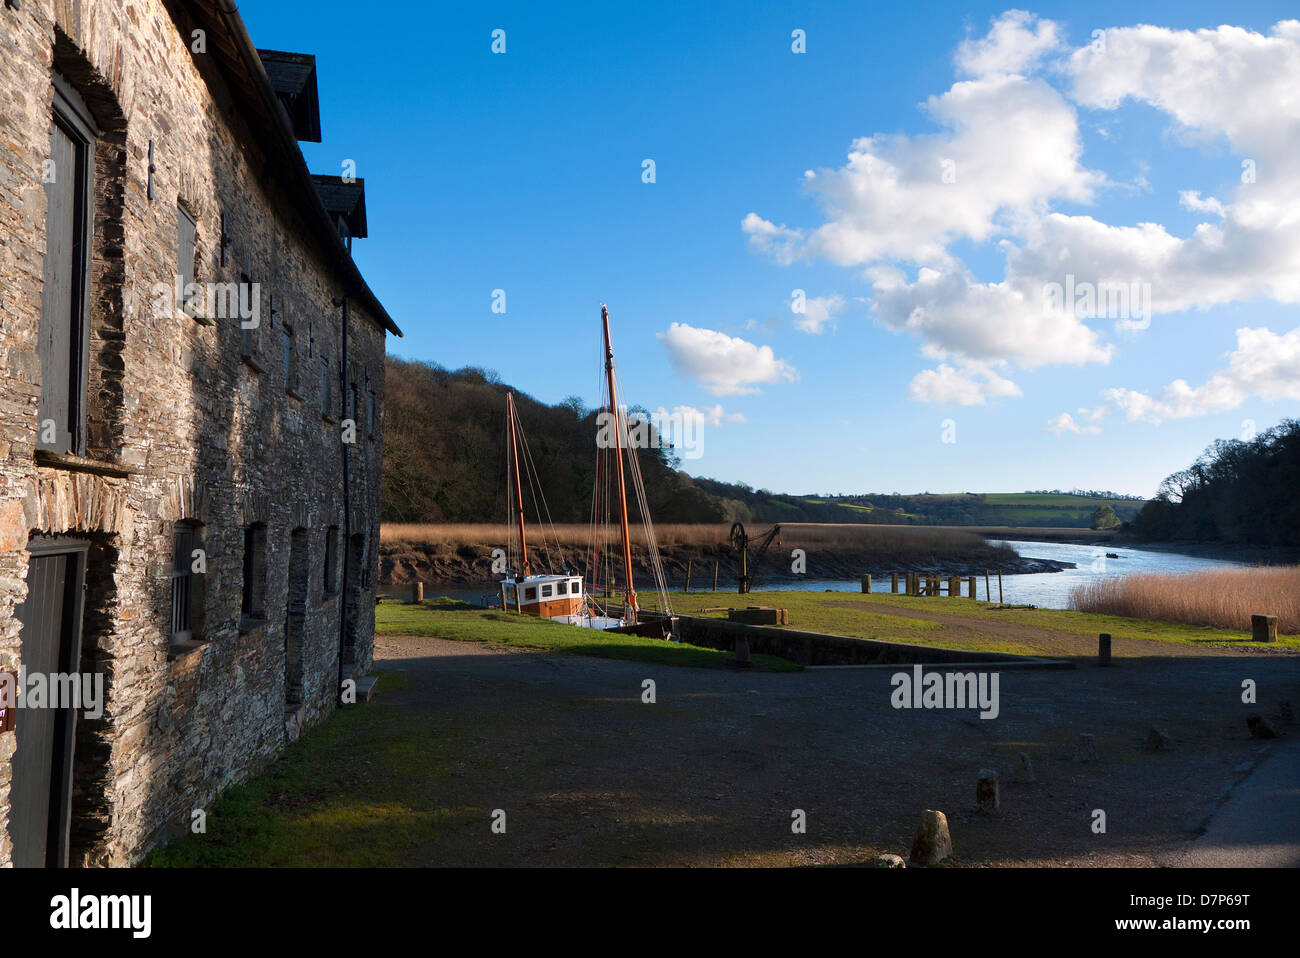 Cotehele Quay in the Tamar Valley in Cornwall. - Stock Image